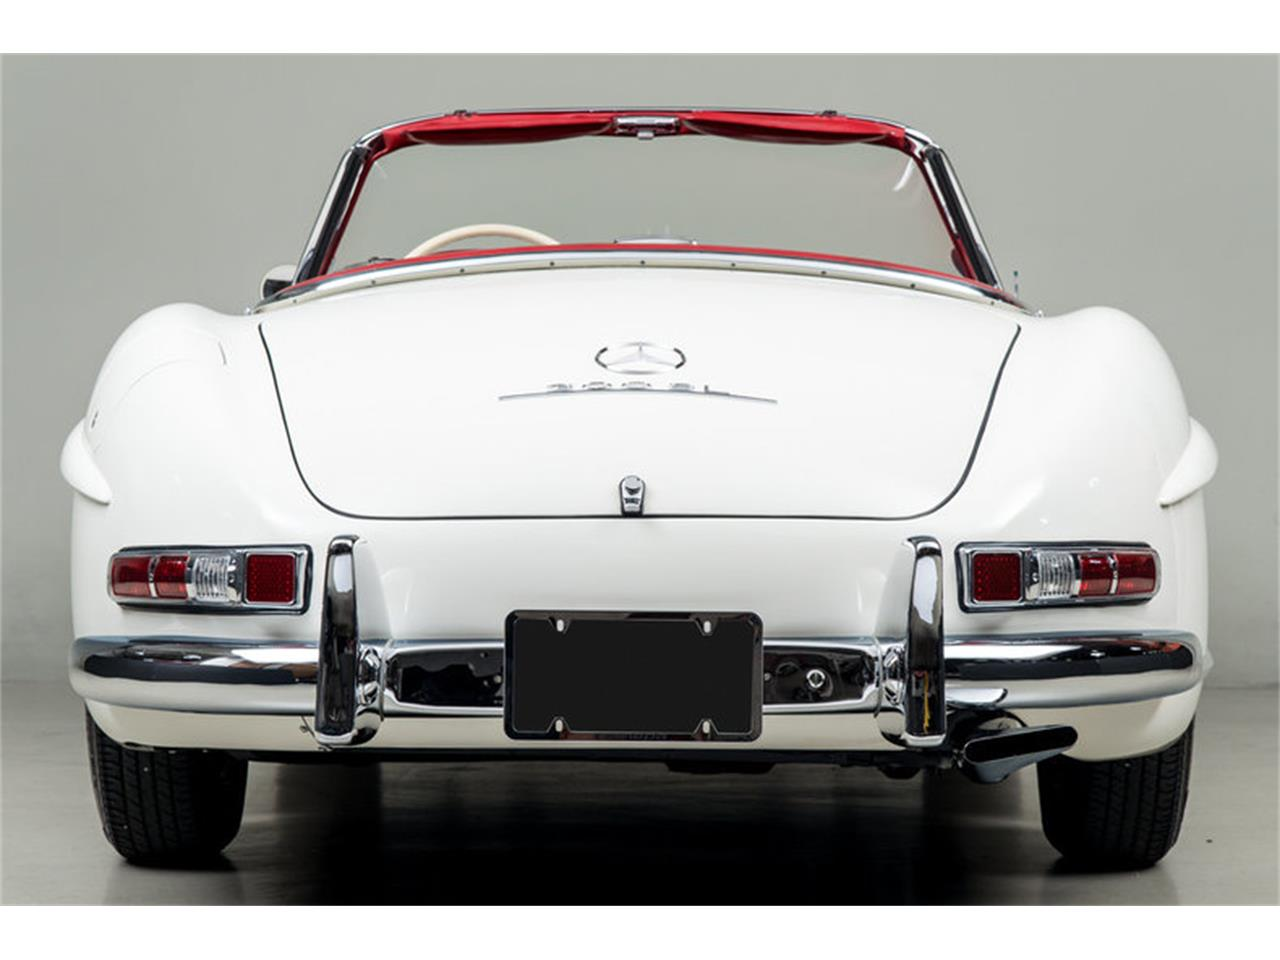 Large Picture of Classic '63 300SL Roadster Auction Vehicle Offered by Canepa - EFPZ